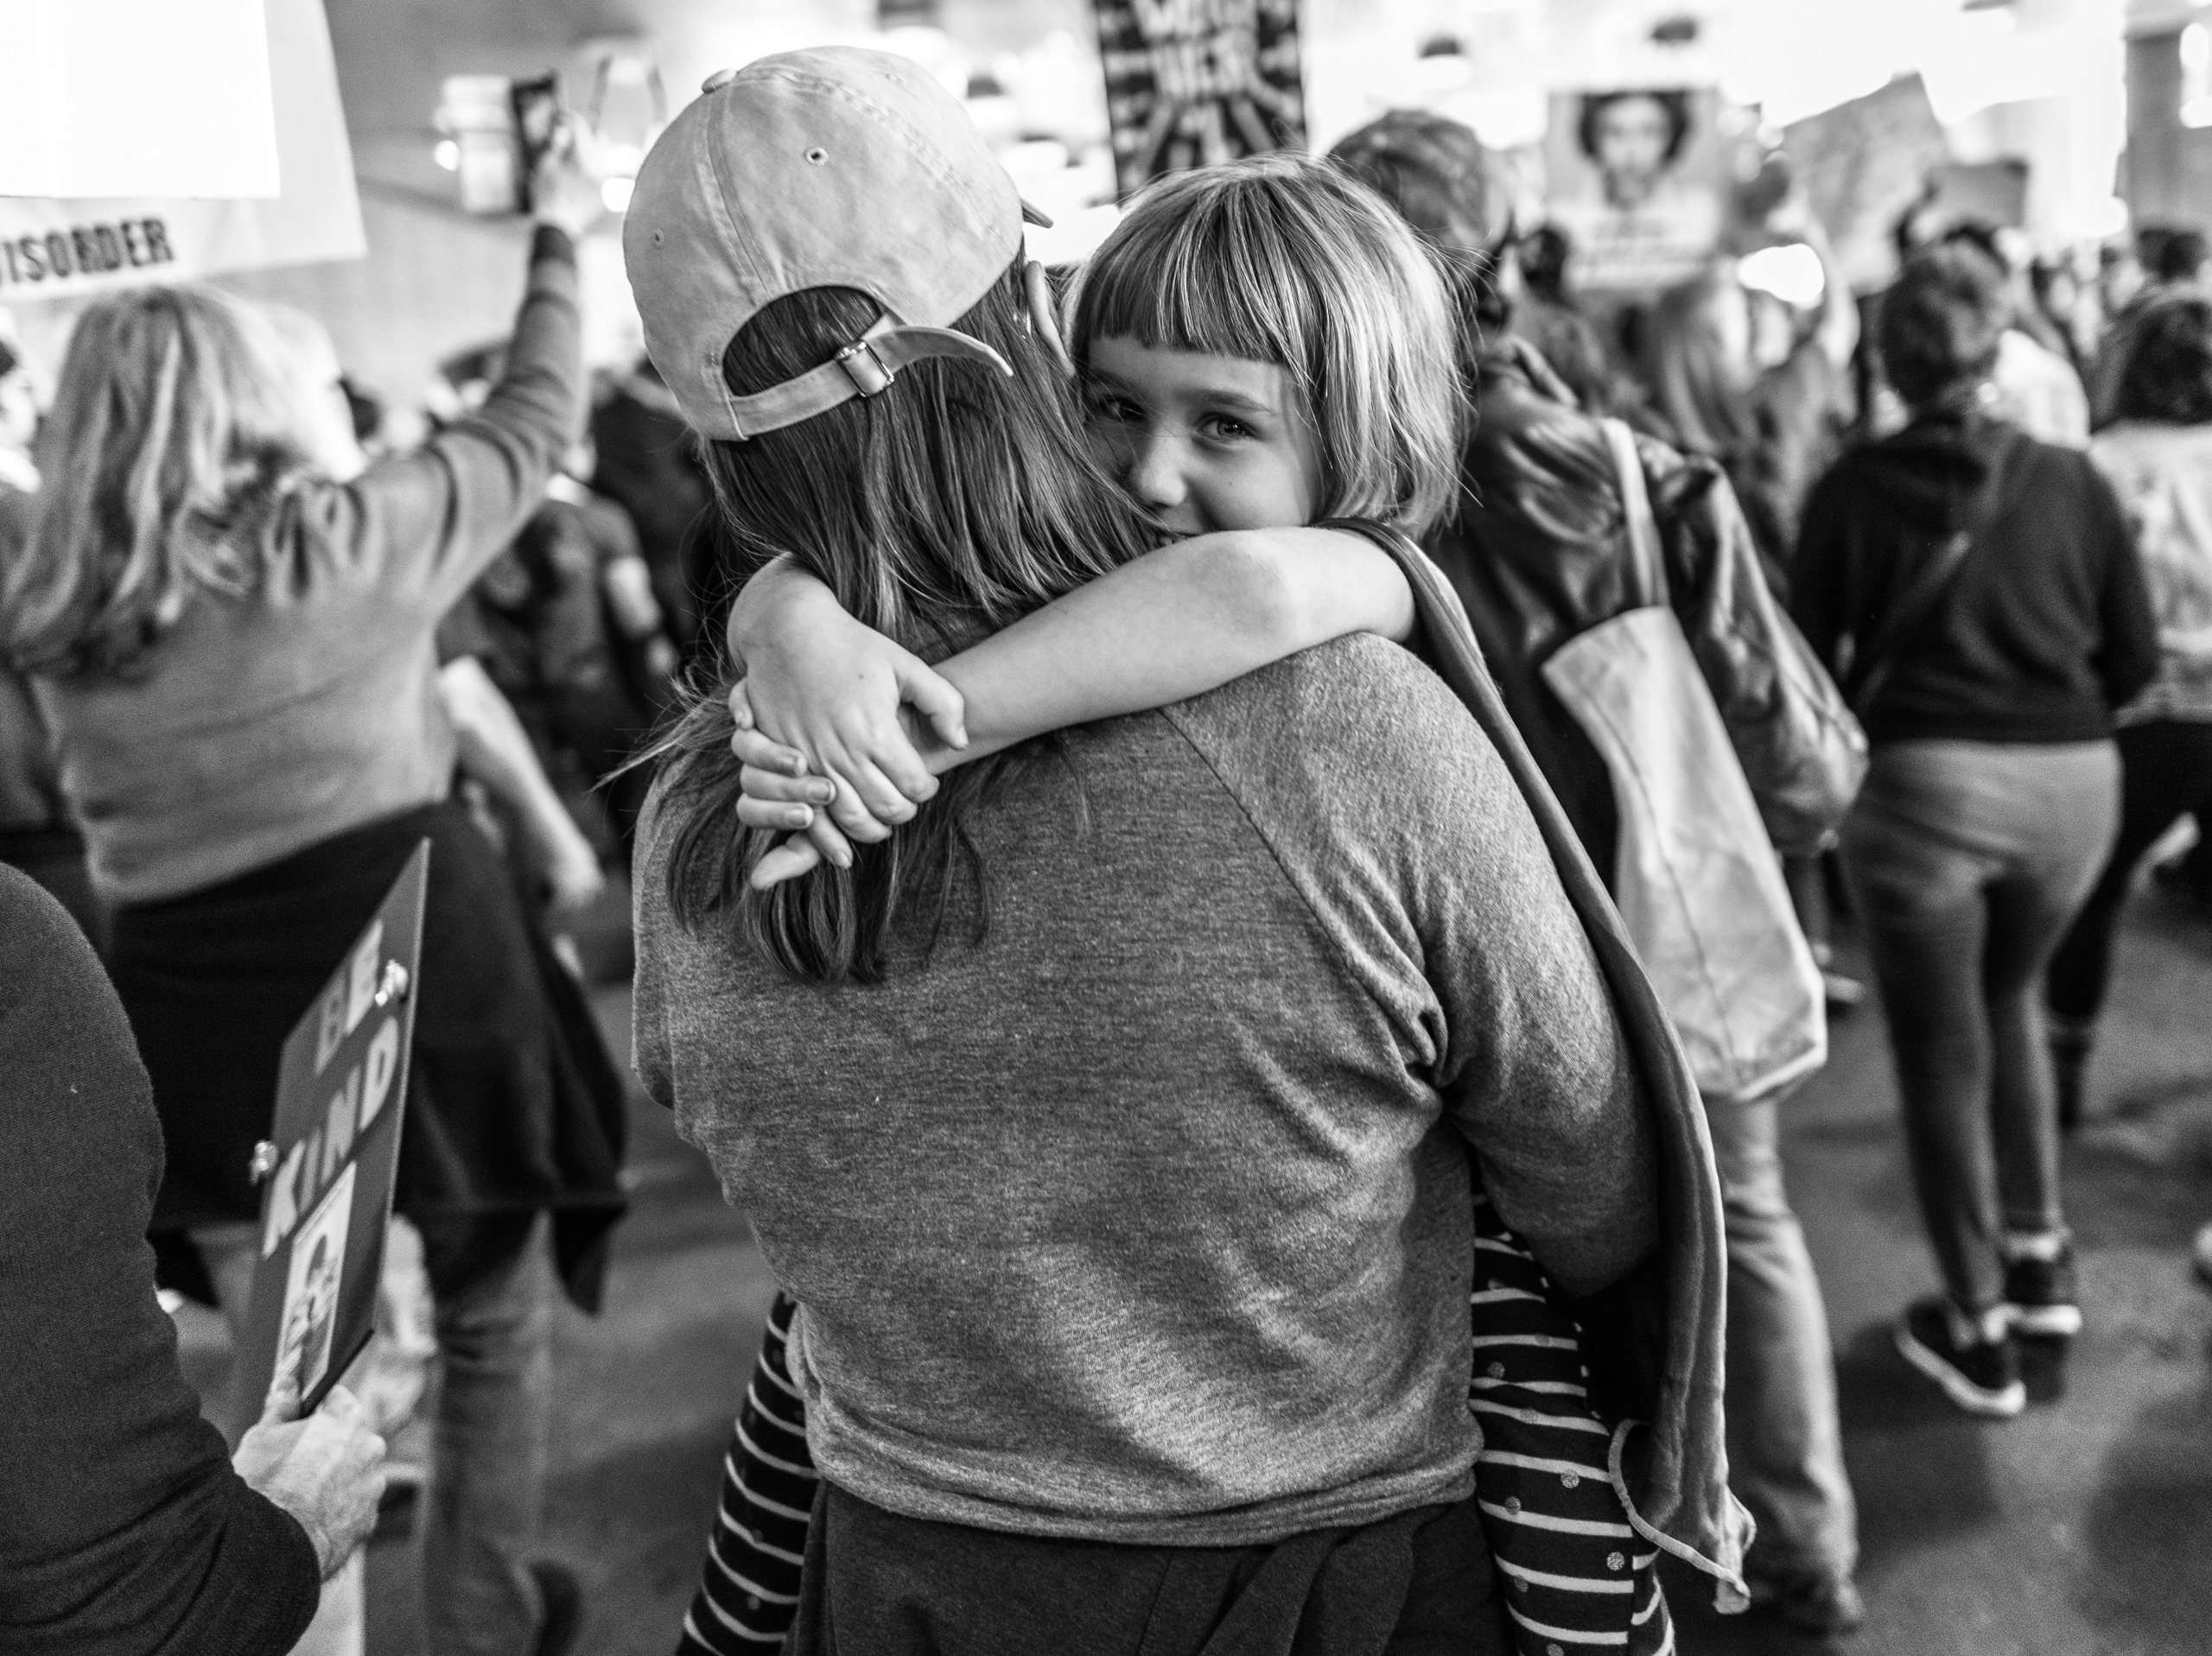 A woman carries her young daughter who hugs mom around the neck and smiles. The daughter wears a super-hero-like cape.